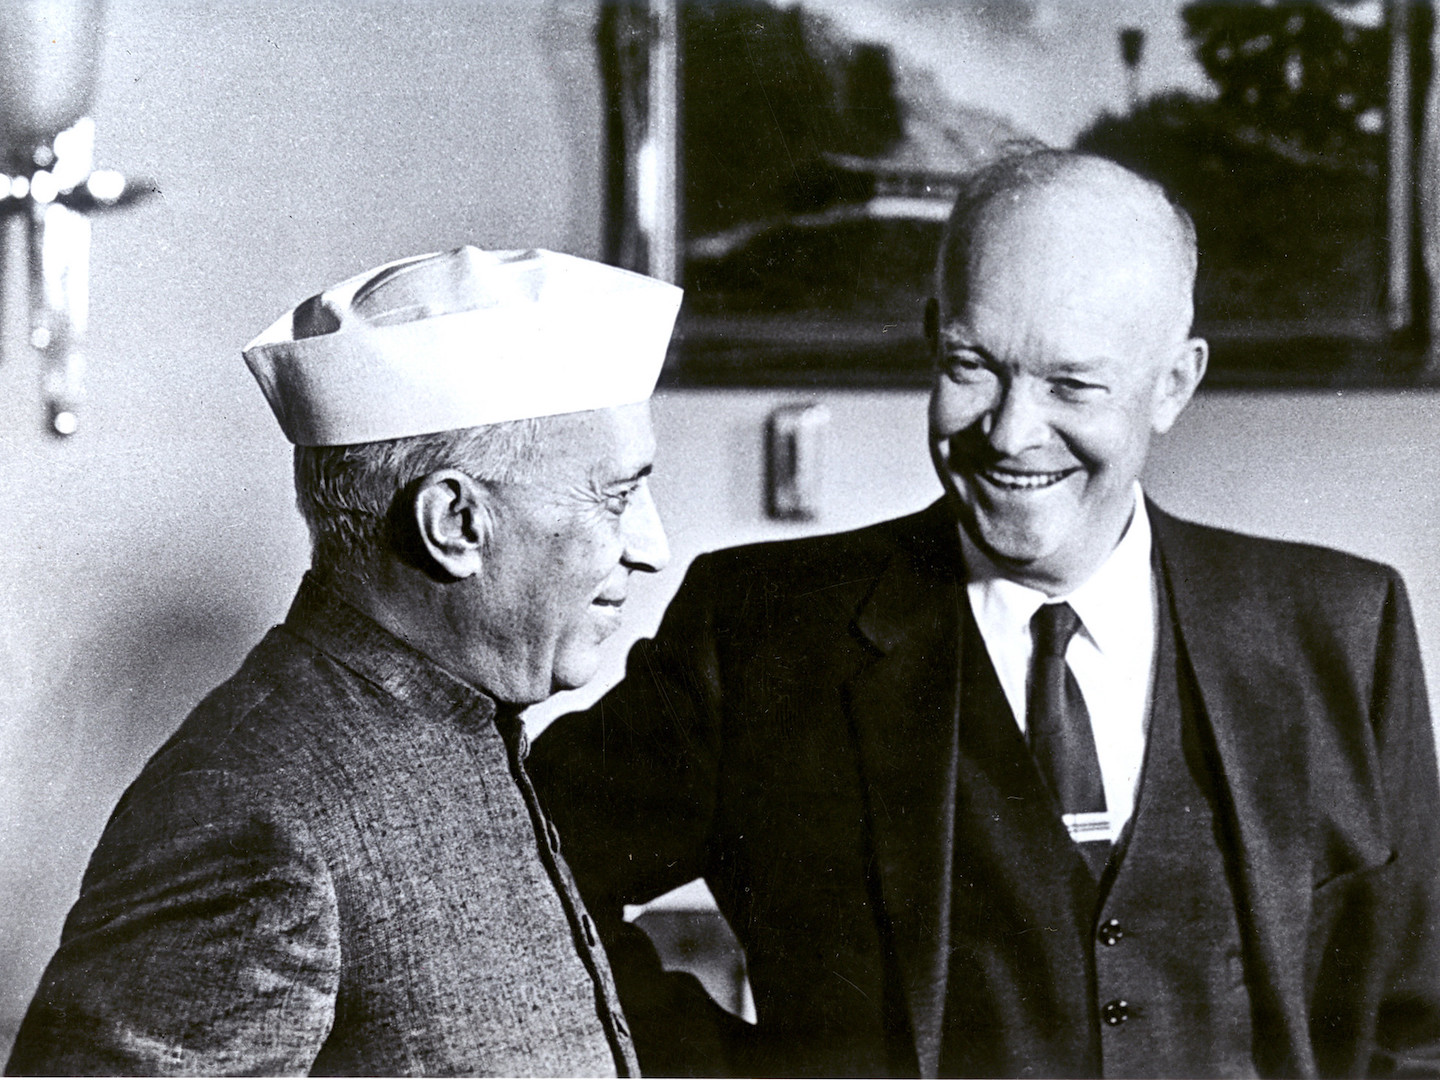 President Eisenhower and Prime Minister Nehru speak during Nehru's second visit to the US